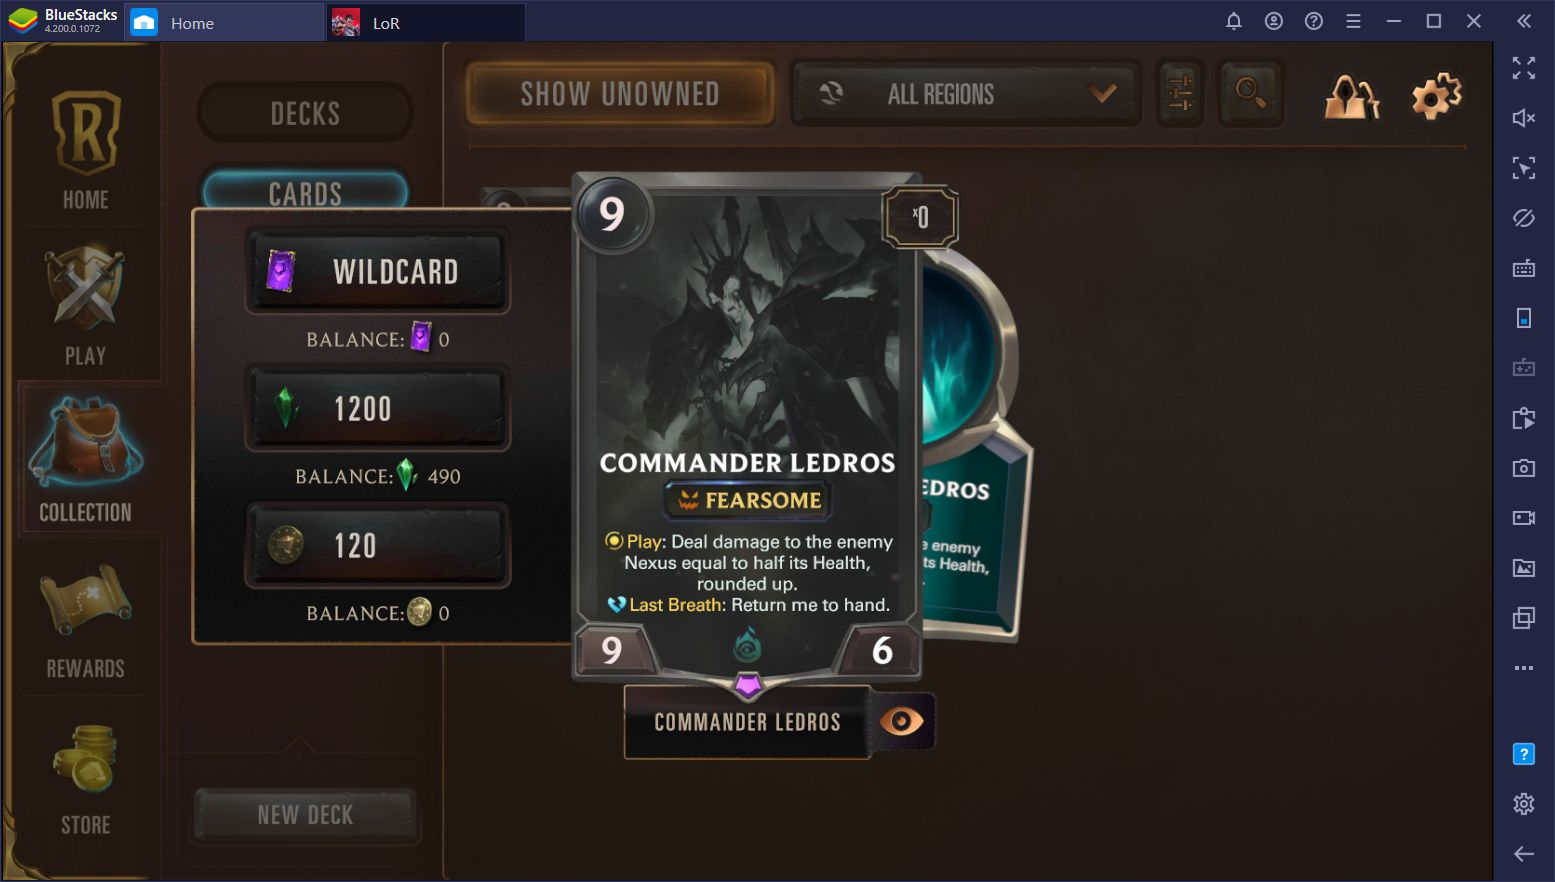 Legends of Runeterra on PC - The Best Deck Combinations (Updated April 2020)